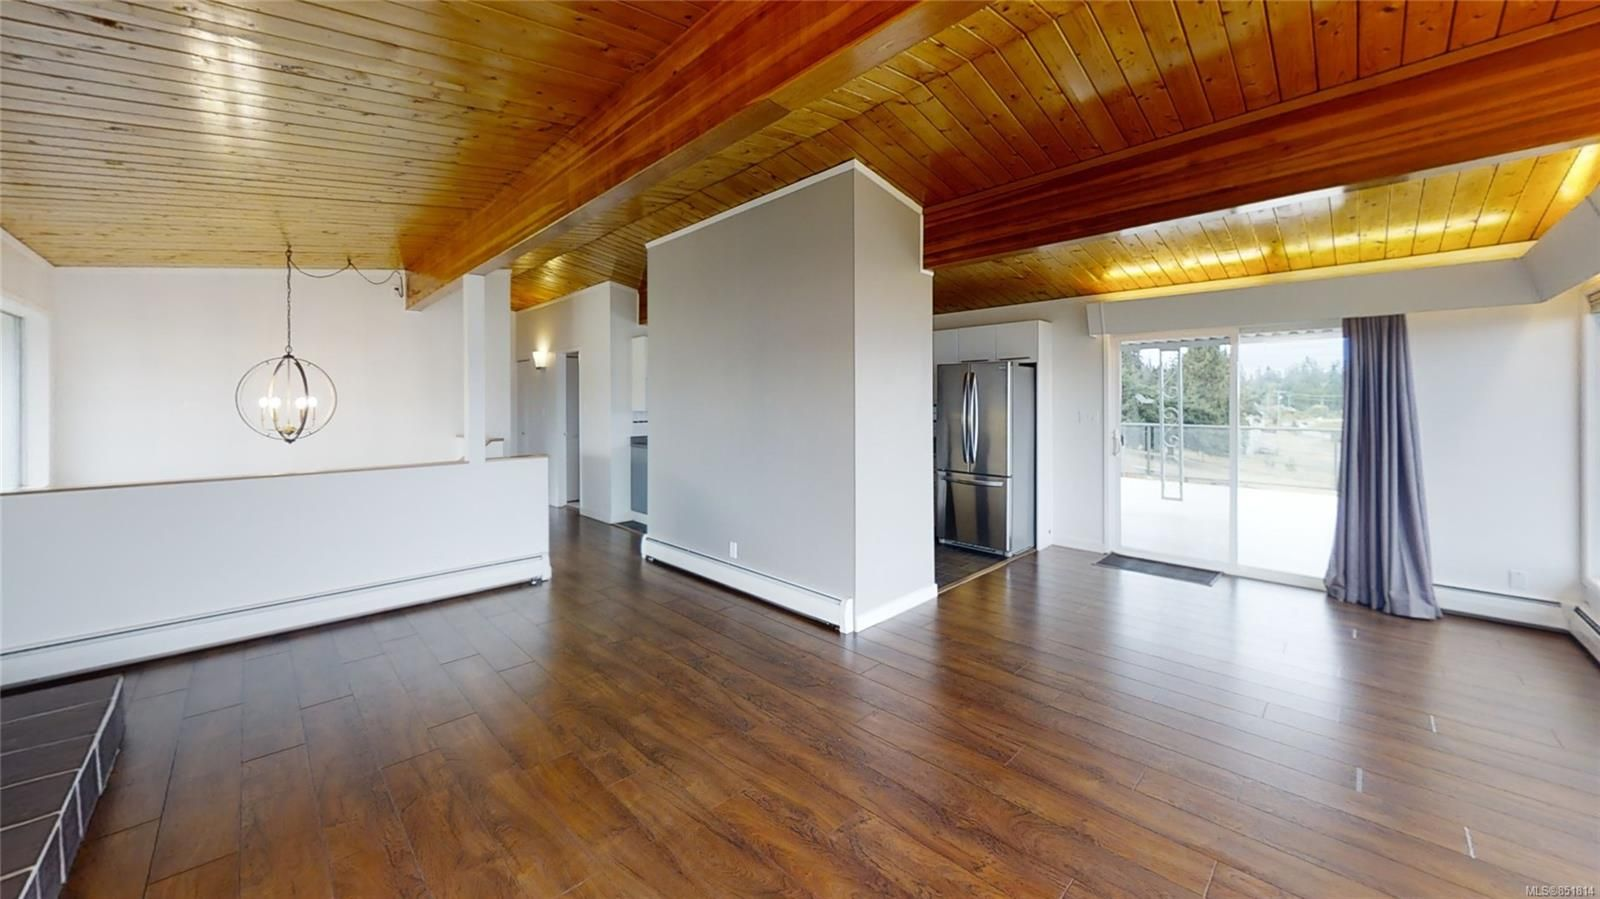 Photo 12: Photos: 191 Muschamp Rd in : CV Union Bay/Fanny Bay House for sale (Comox Valley)  : MLS®# 851814